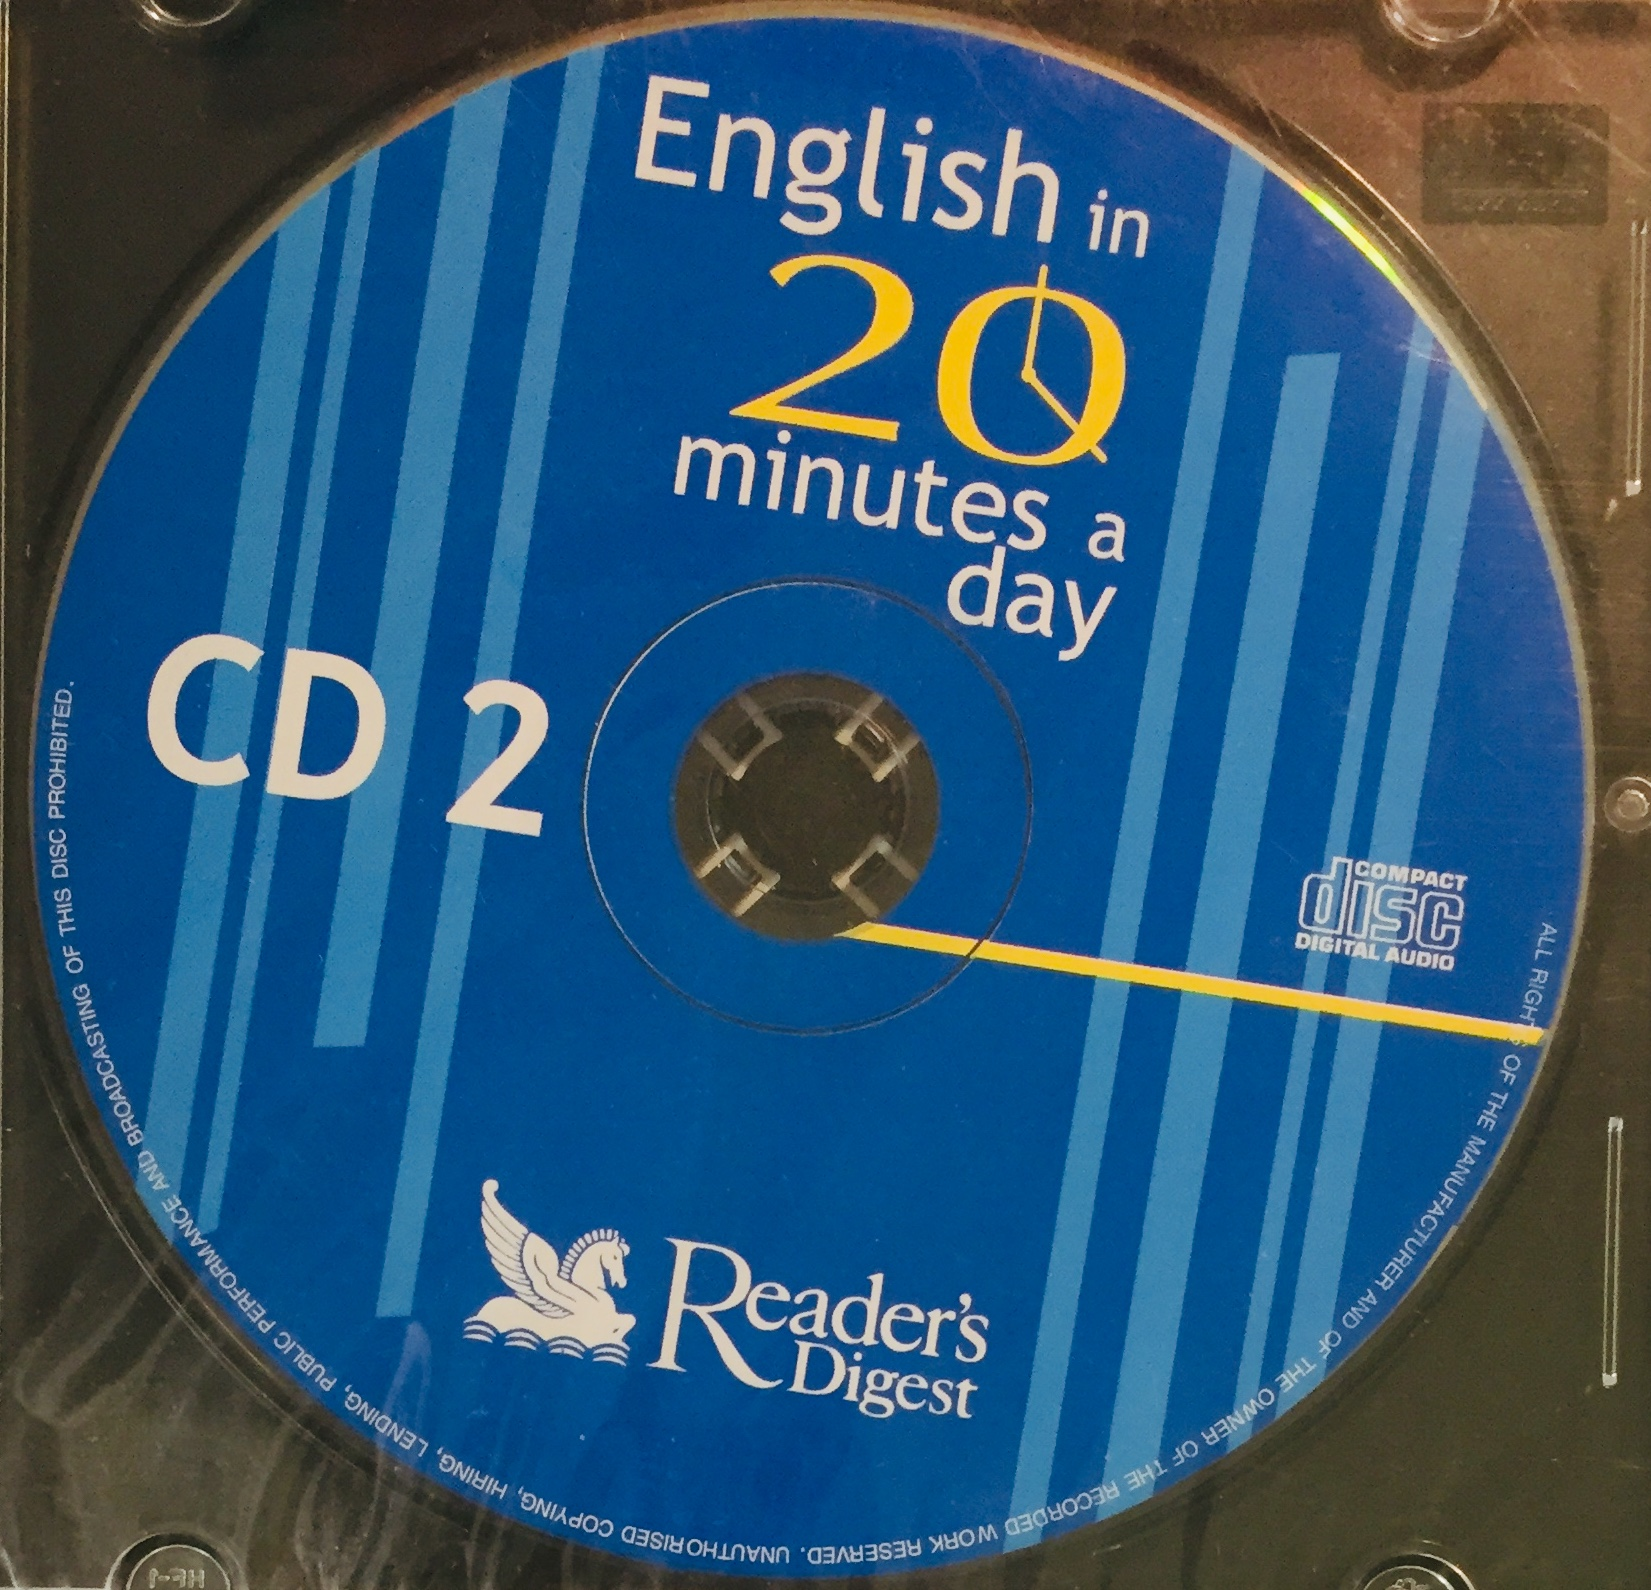 English in 20 minutes a Day - CD 2 - CD /slim/